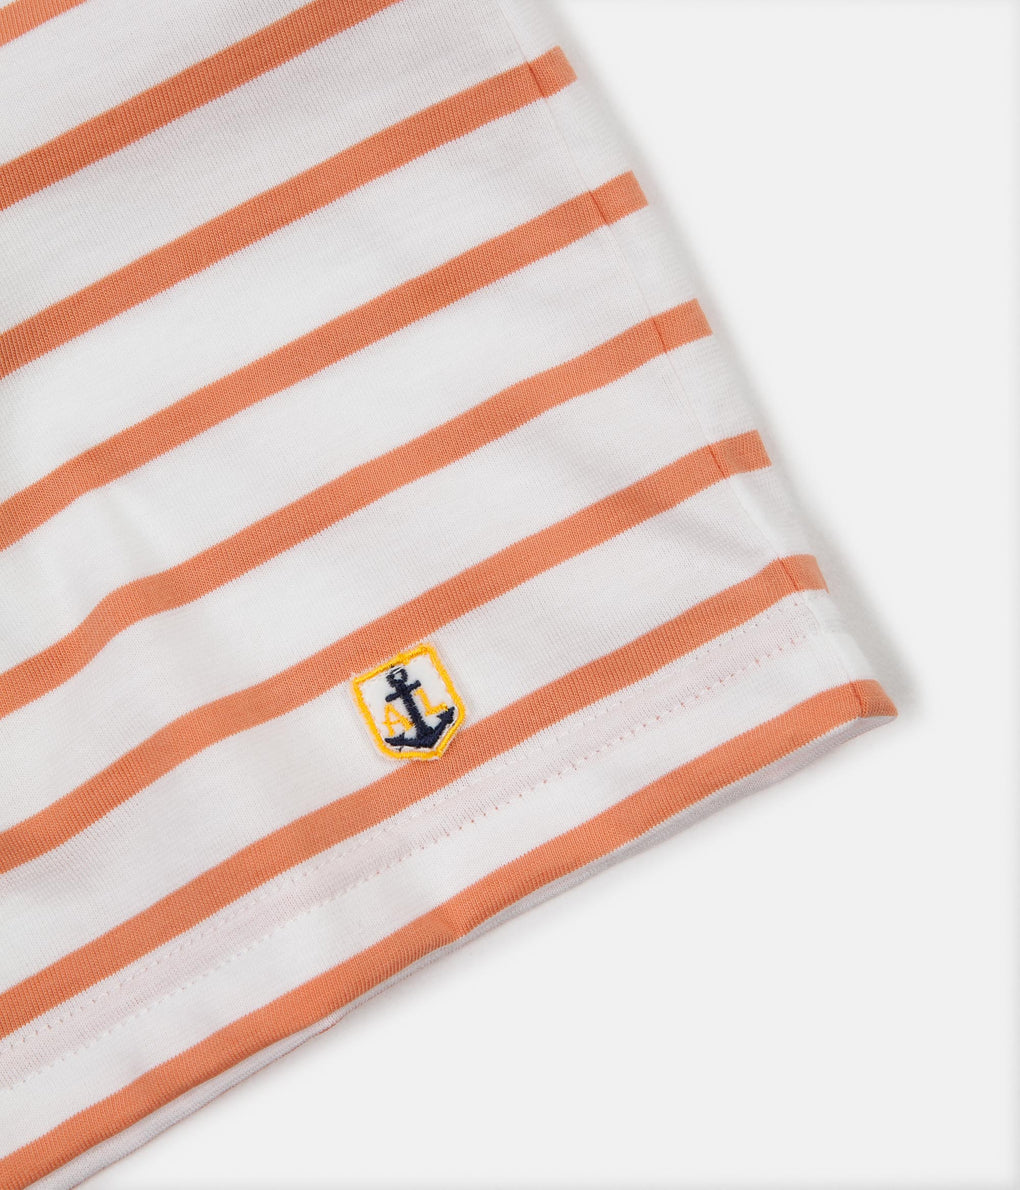 Armor Lux Breton Sailor Striped T-Shirt - Milk / Melon